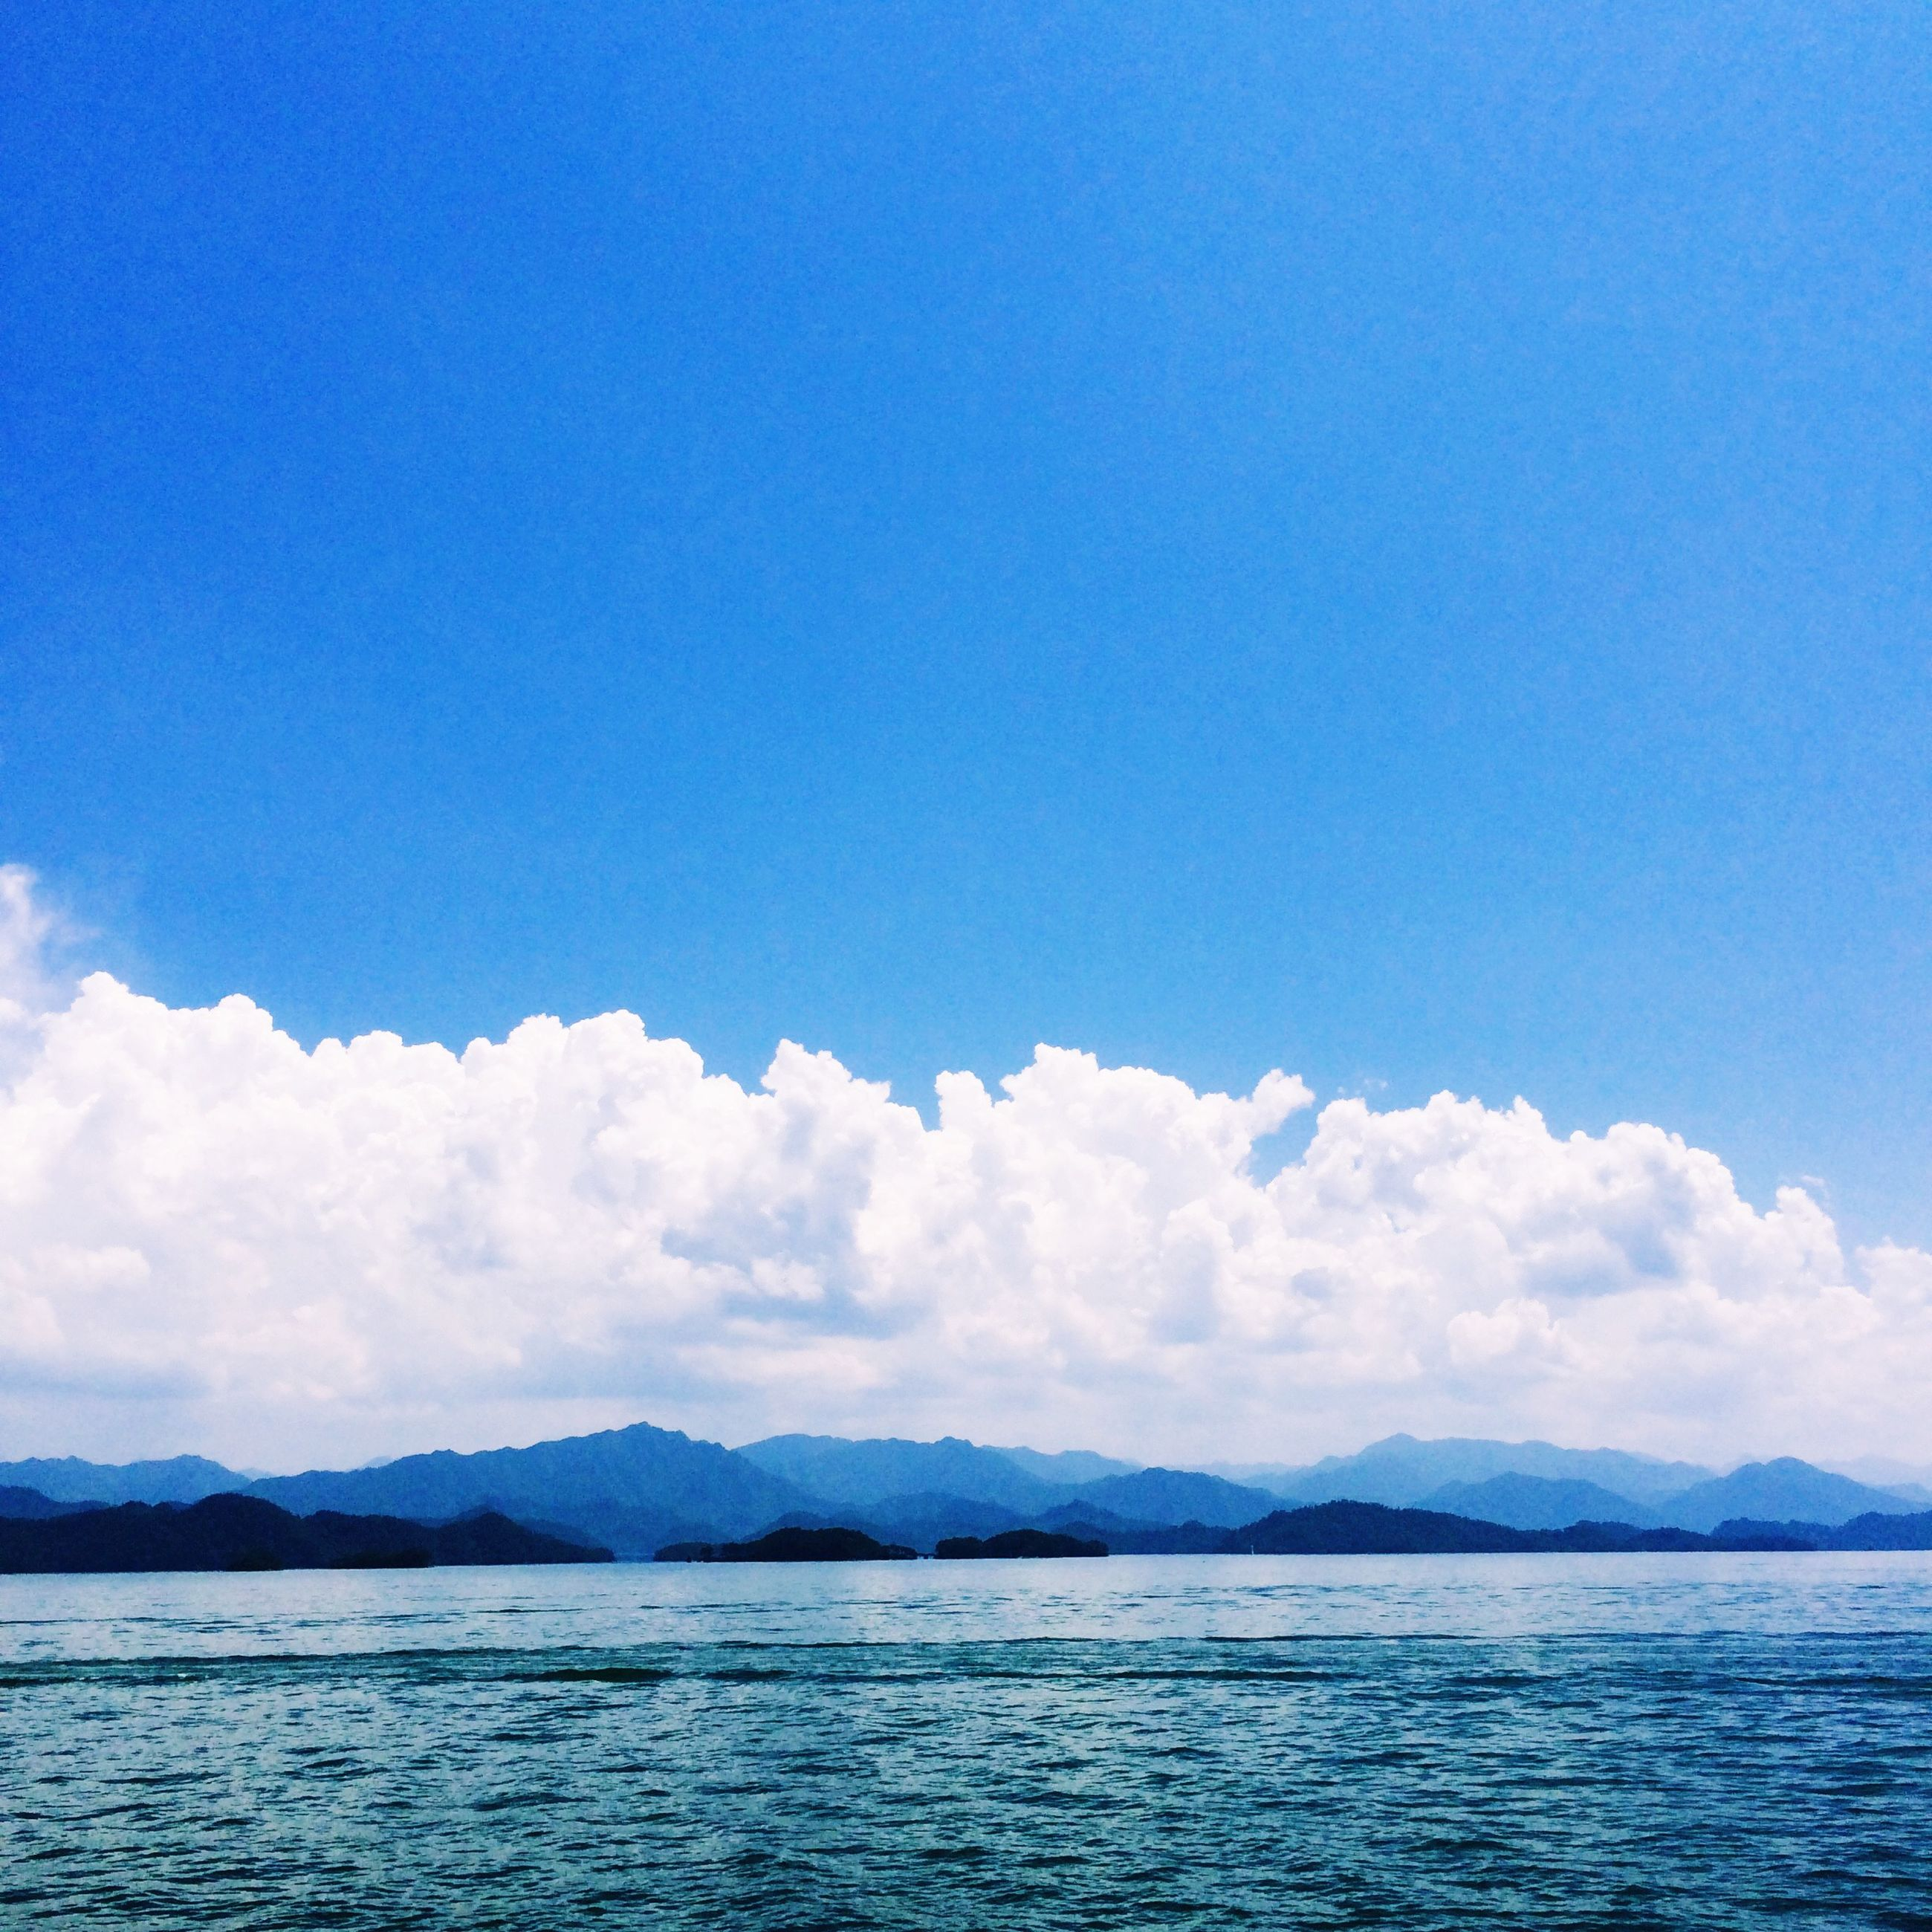 water, waterfront, mountain, tranquil scene, scenics, tranquility, mountain range, beauty in nature, sky, sea, blue, nature, rippled, idyllic, lake, cloud, copy space, cloud - sky, calm, outdoors